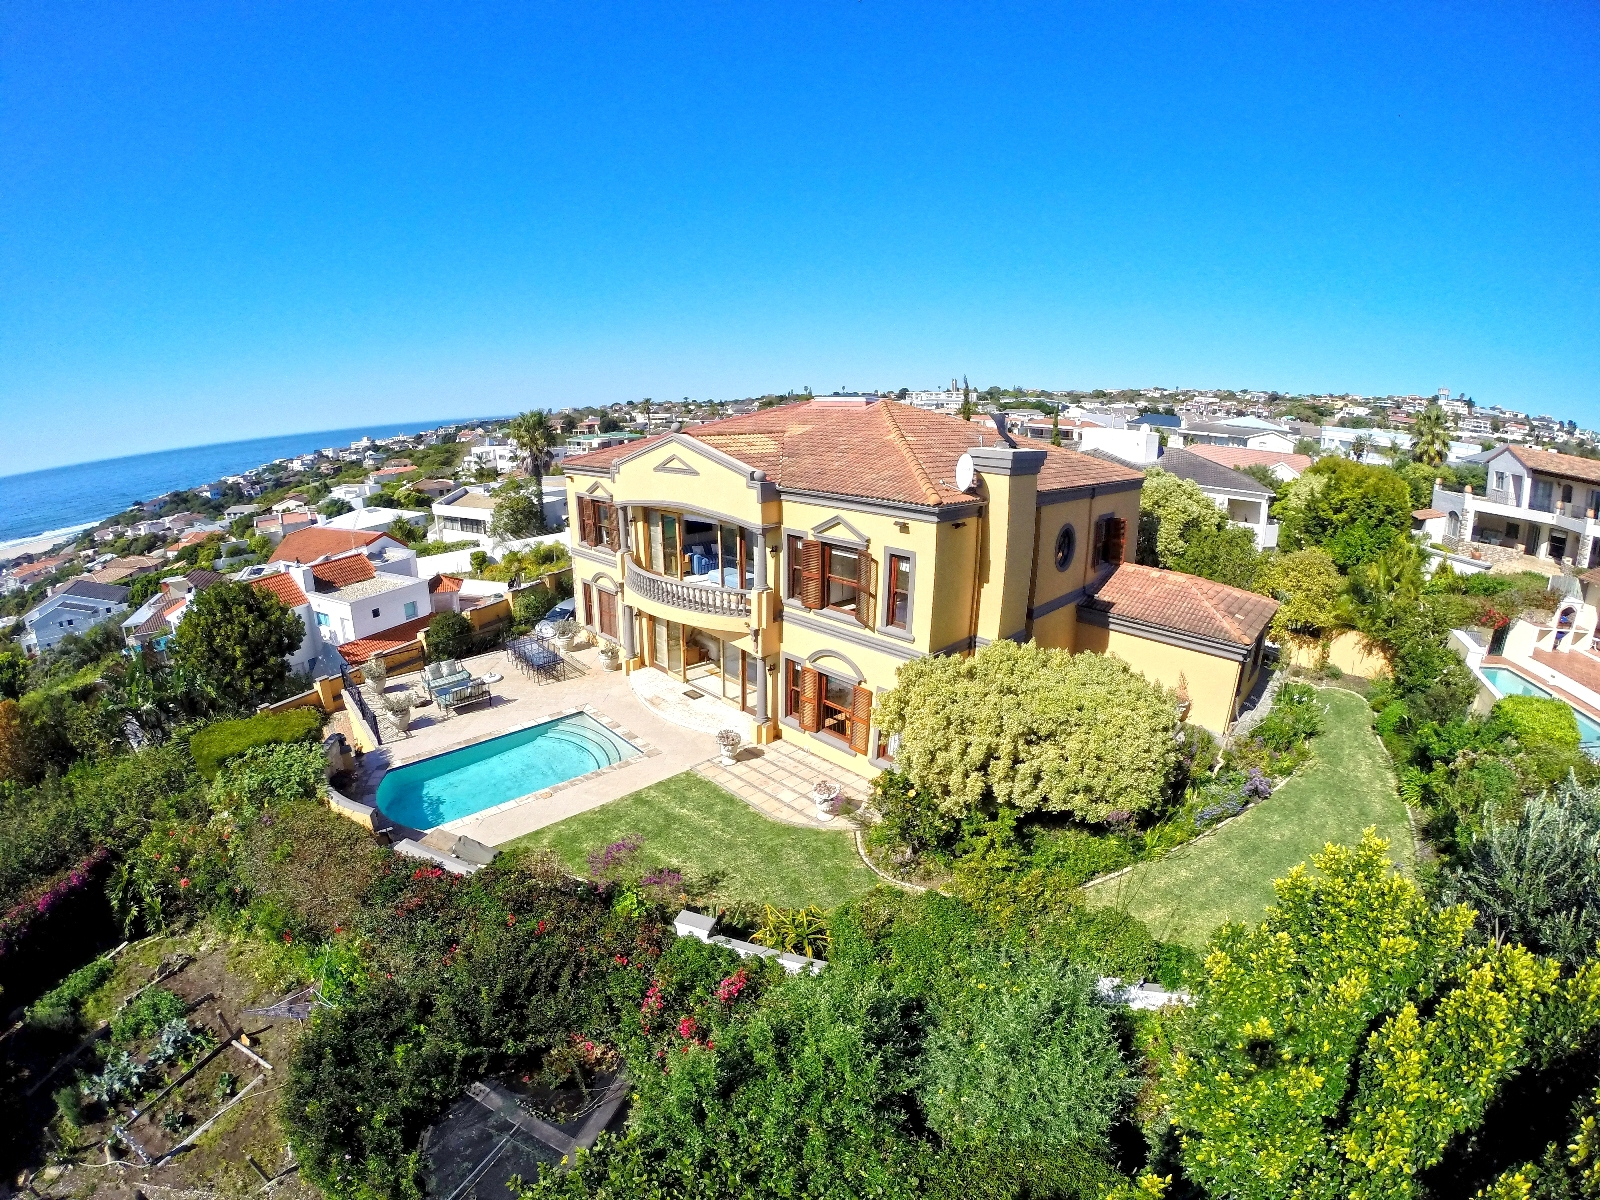 Maison unifamiliale pour l Vente à UPMARKET SEA VIEW HOME Plettenberg Bay, Cap-Occidental 6600 Afrique Du Sud